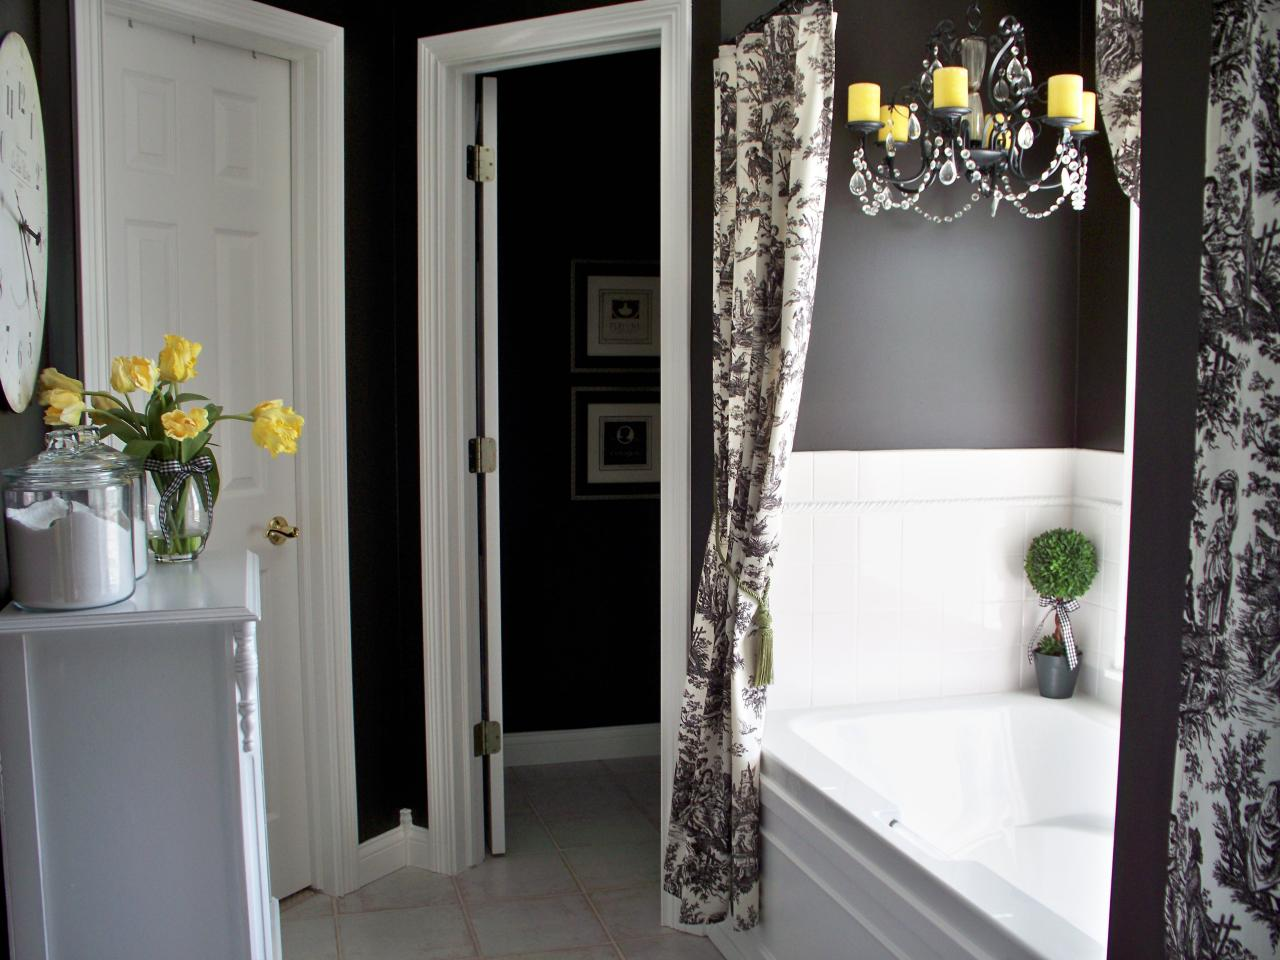 Black and white bathroom decor ideas hgtv pictures hgtv for 5 x 4 bathroom designs